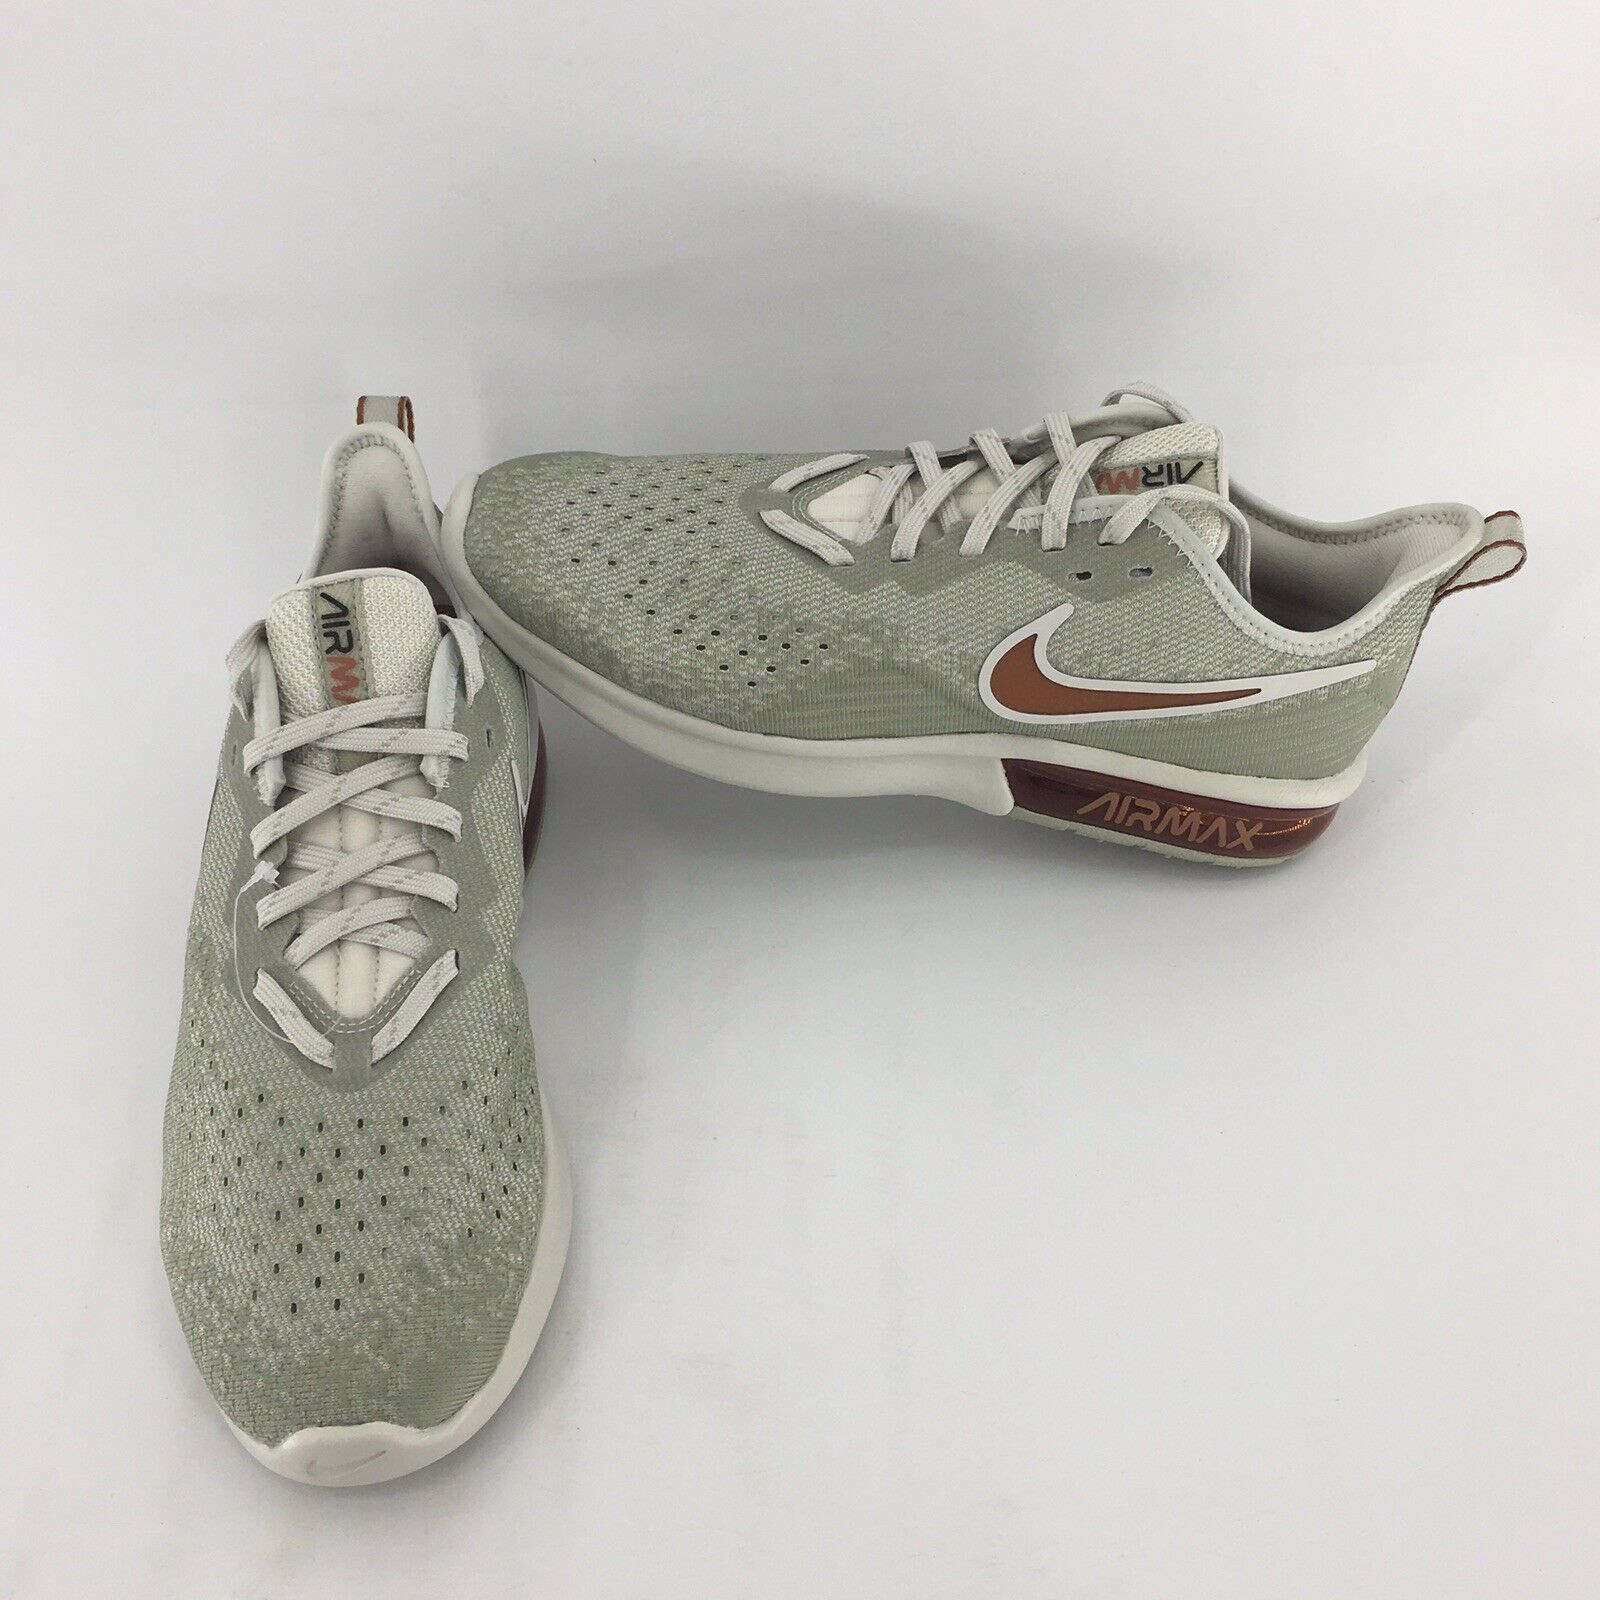 "Nike Air Max Sequent 4 ""Light Bone"" (AO4485-007) Training shoes Men's Size 9"